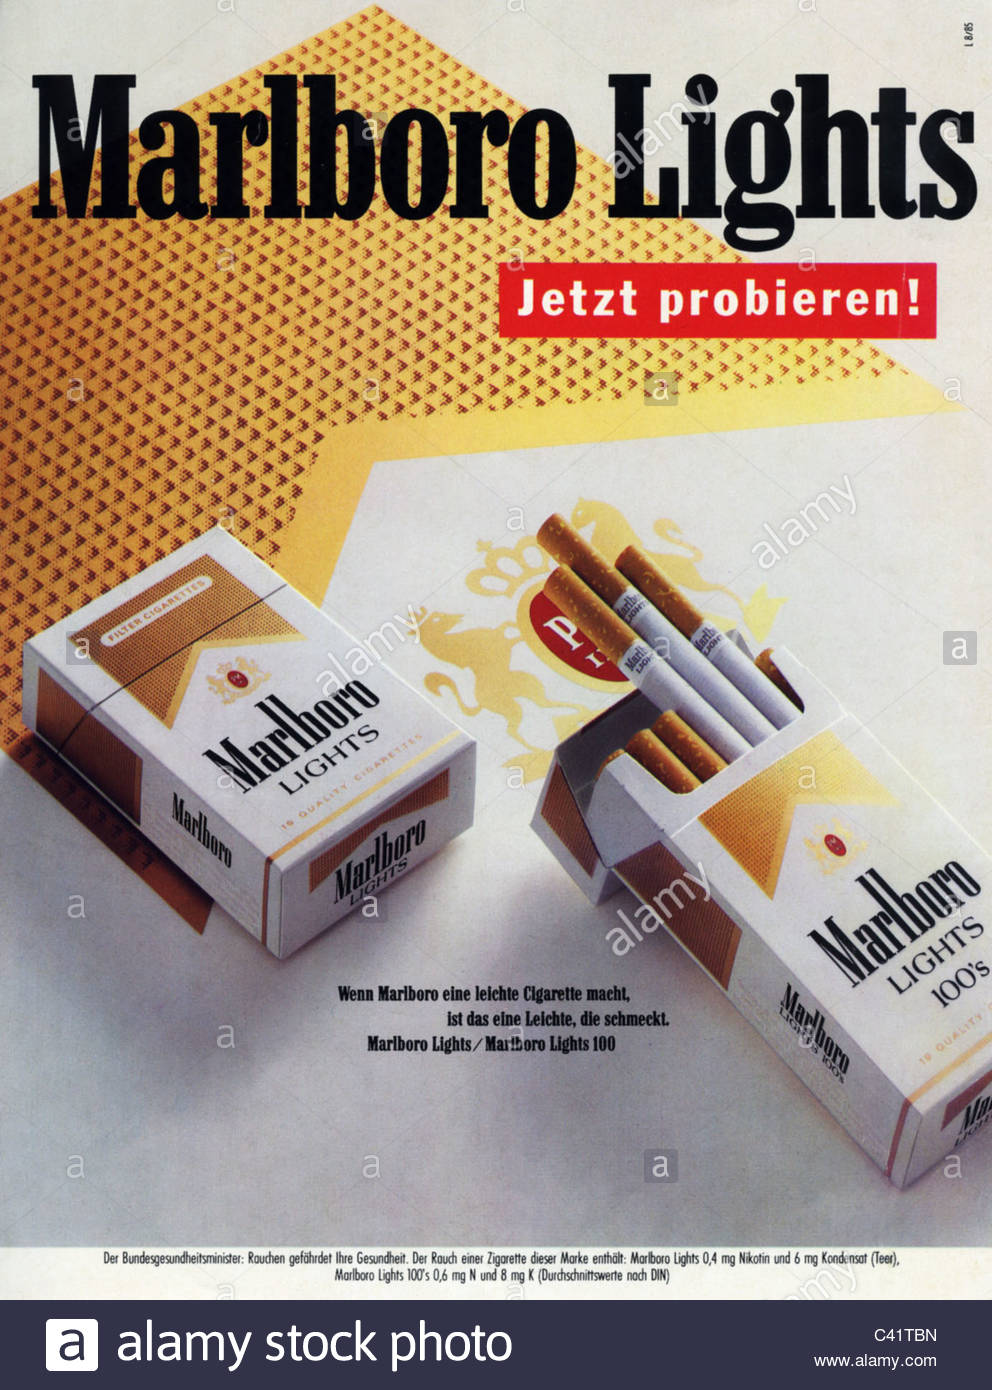 Advertising Tobacco Cigarettes Marlboro Lights Advert Published In A German Magazine